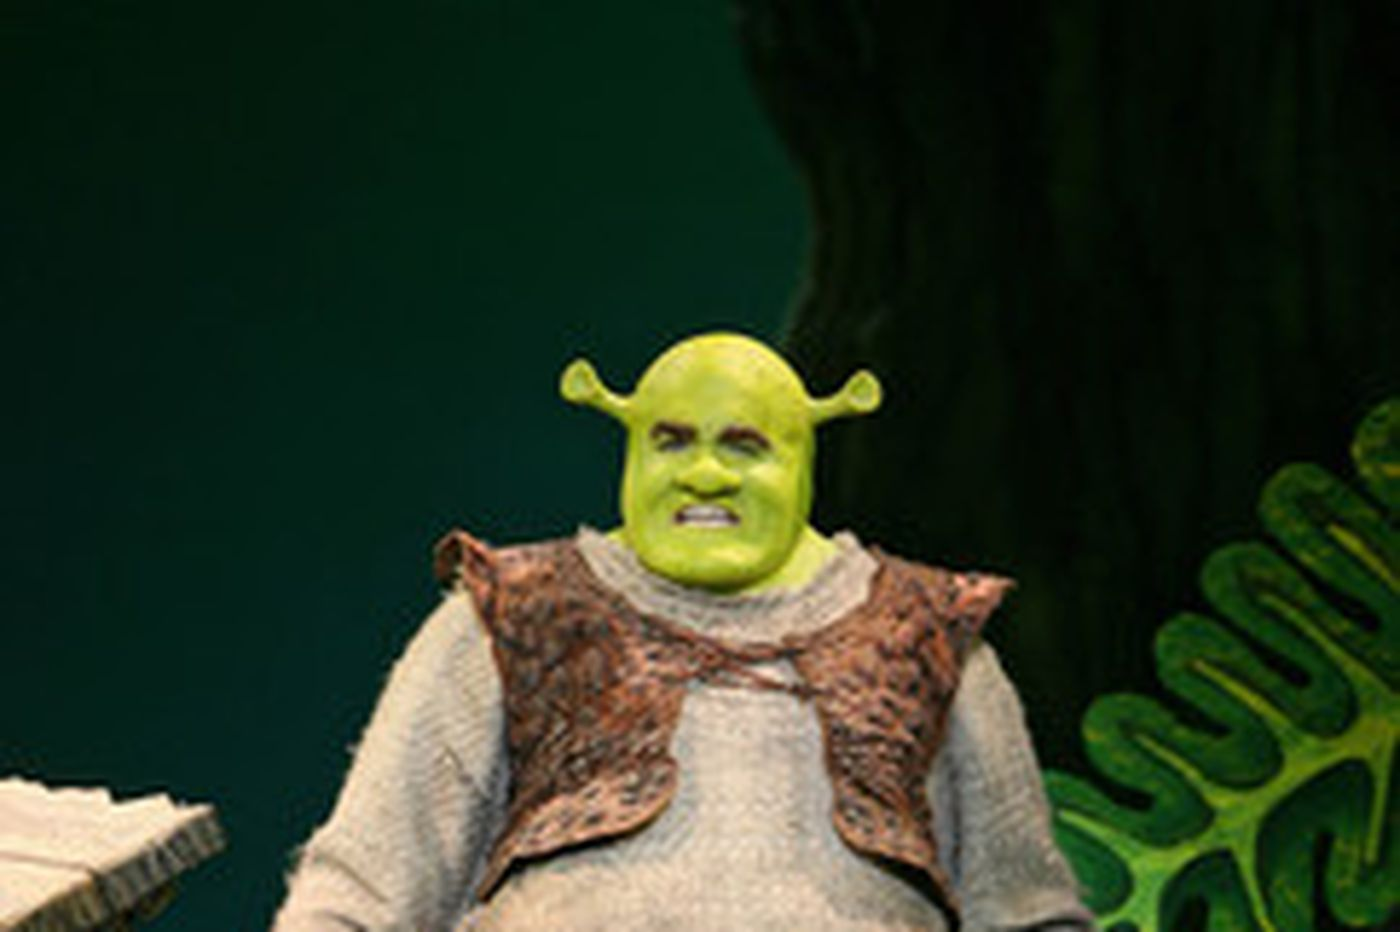 A big green ogre goes to Broadway